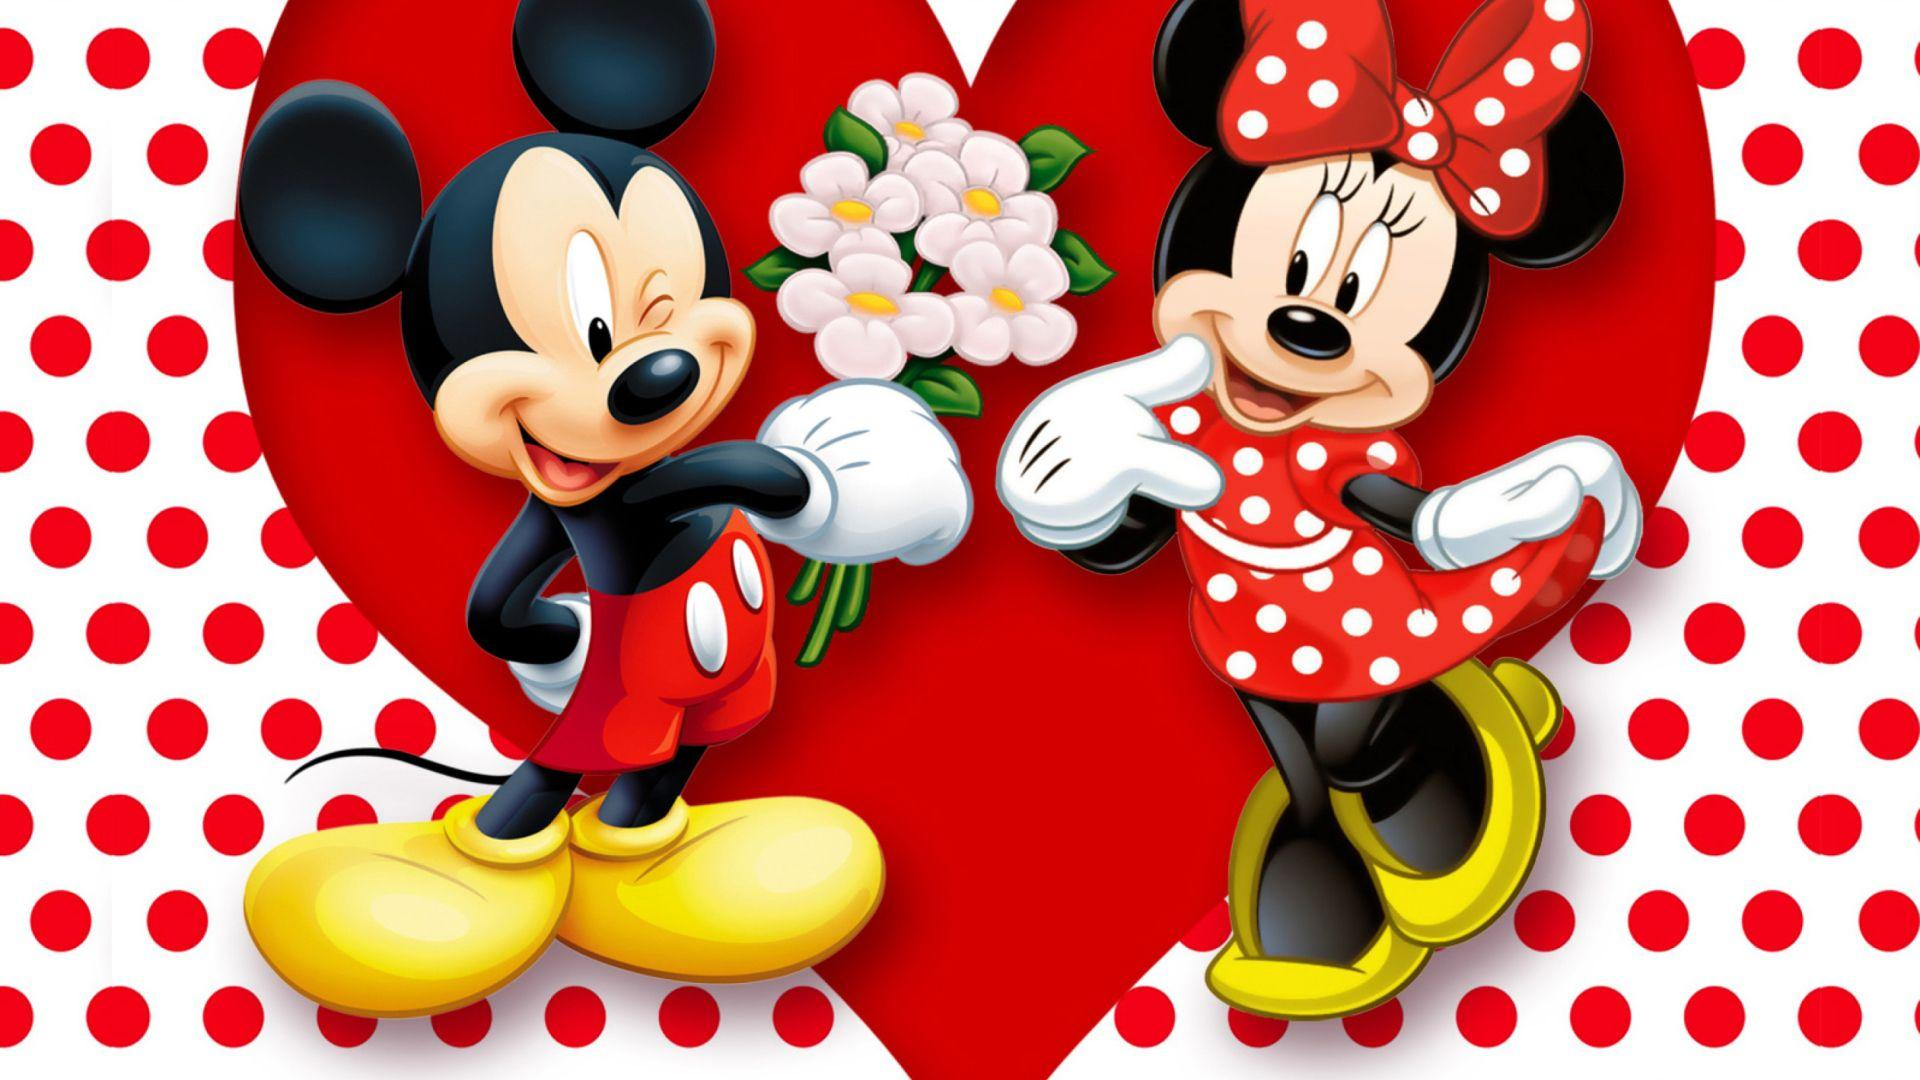 mickey and minnie mouse wallpapers high quality resolution hd